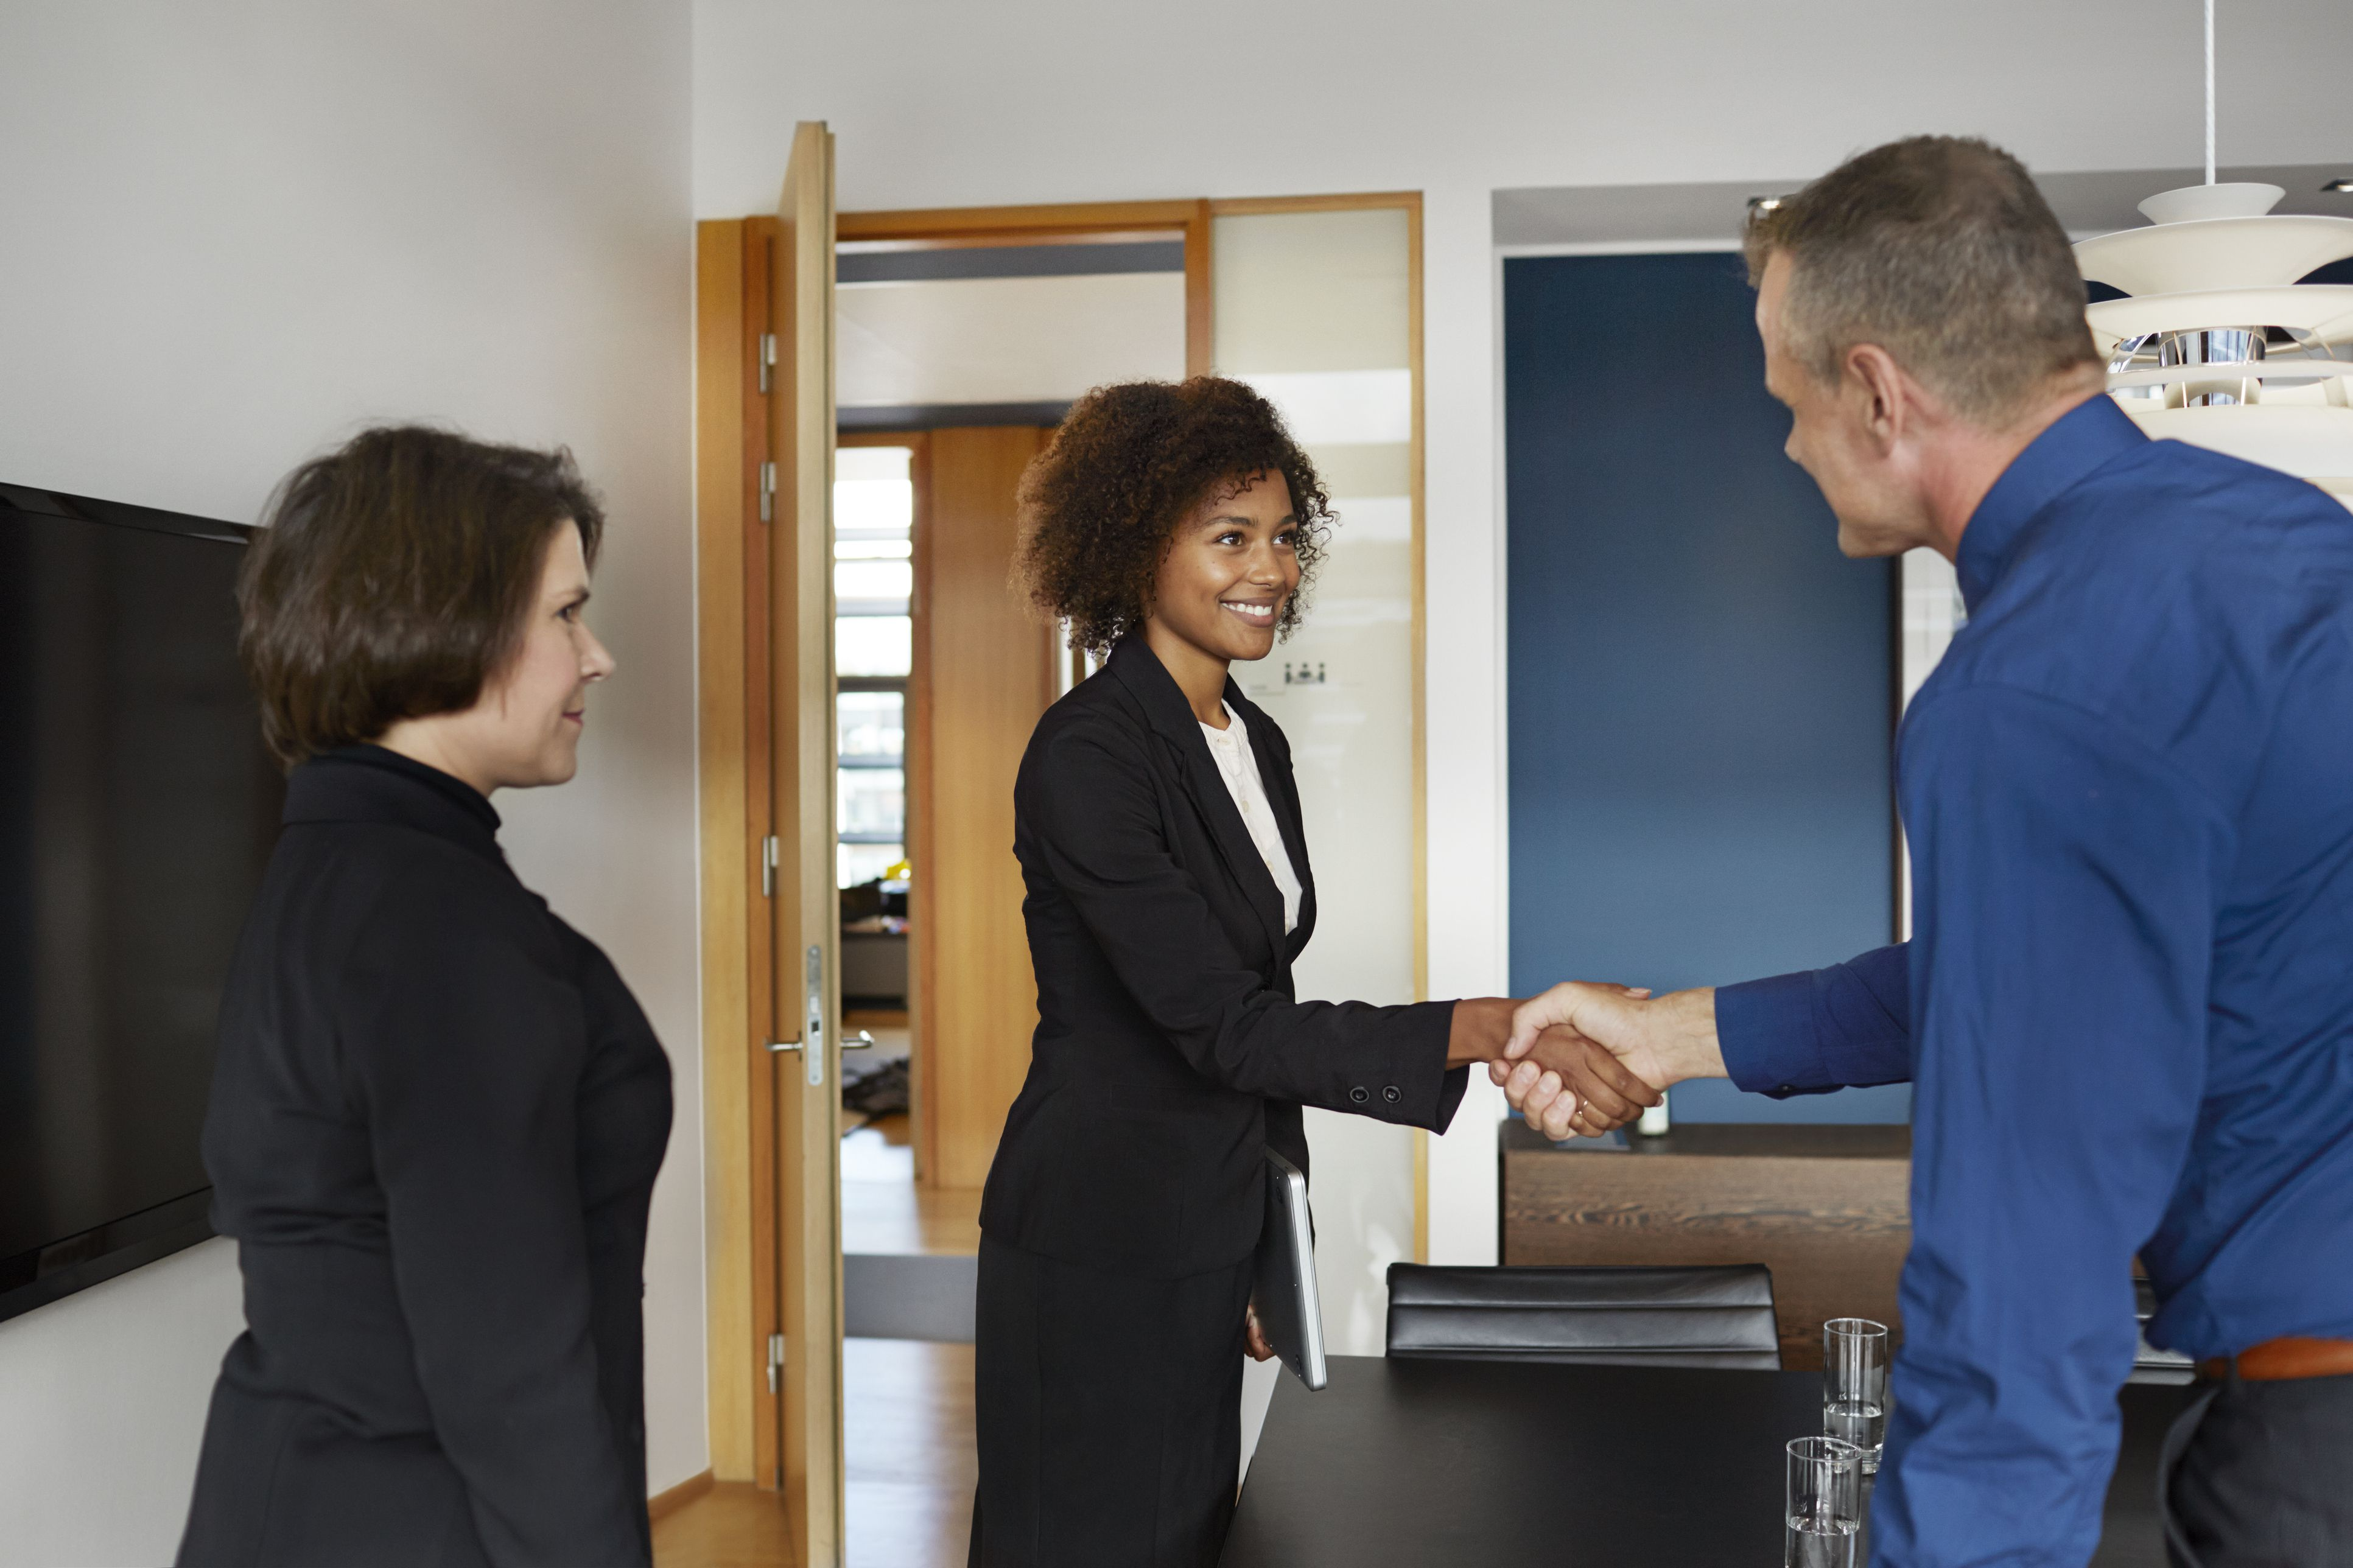 How Does an Employer Decide Who to Hire